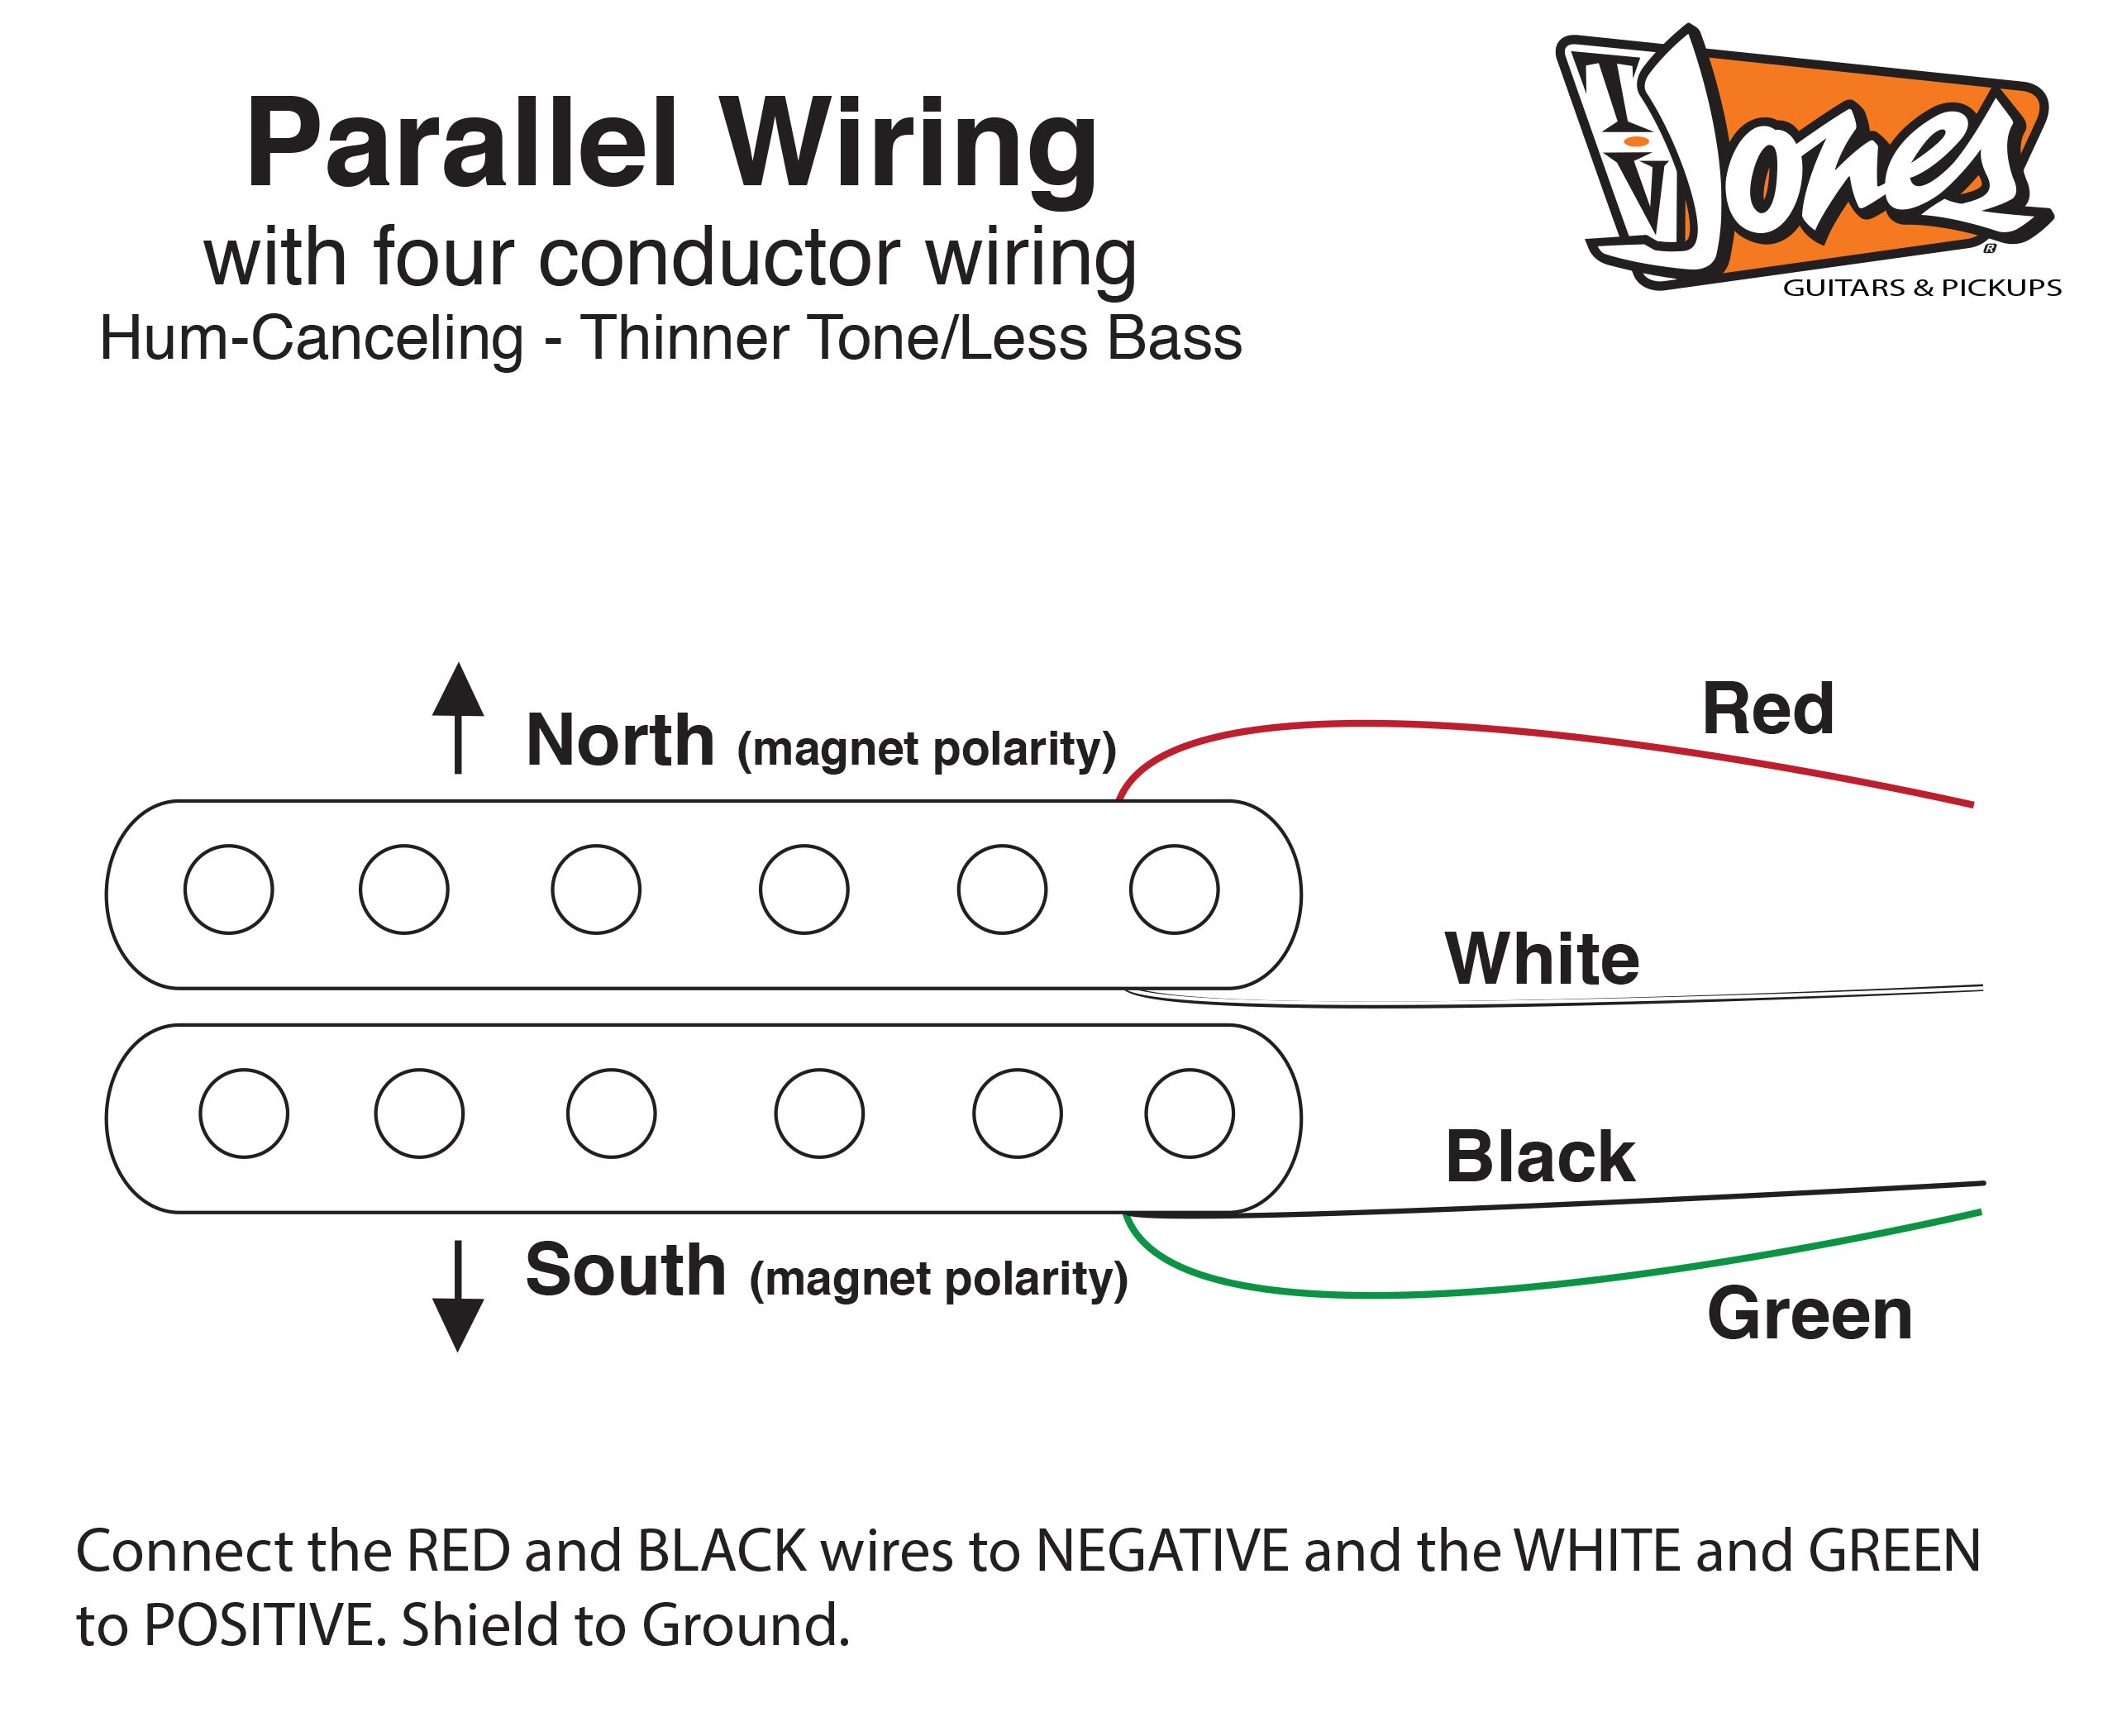 Tv Jones Product Dimensions 4 Wire Wiring Diagram Gibson Les Paul Pickups Pickup